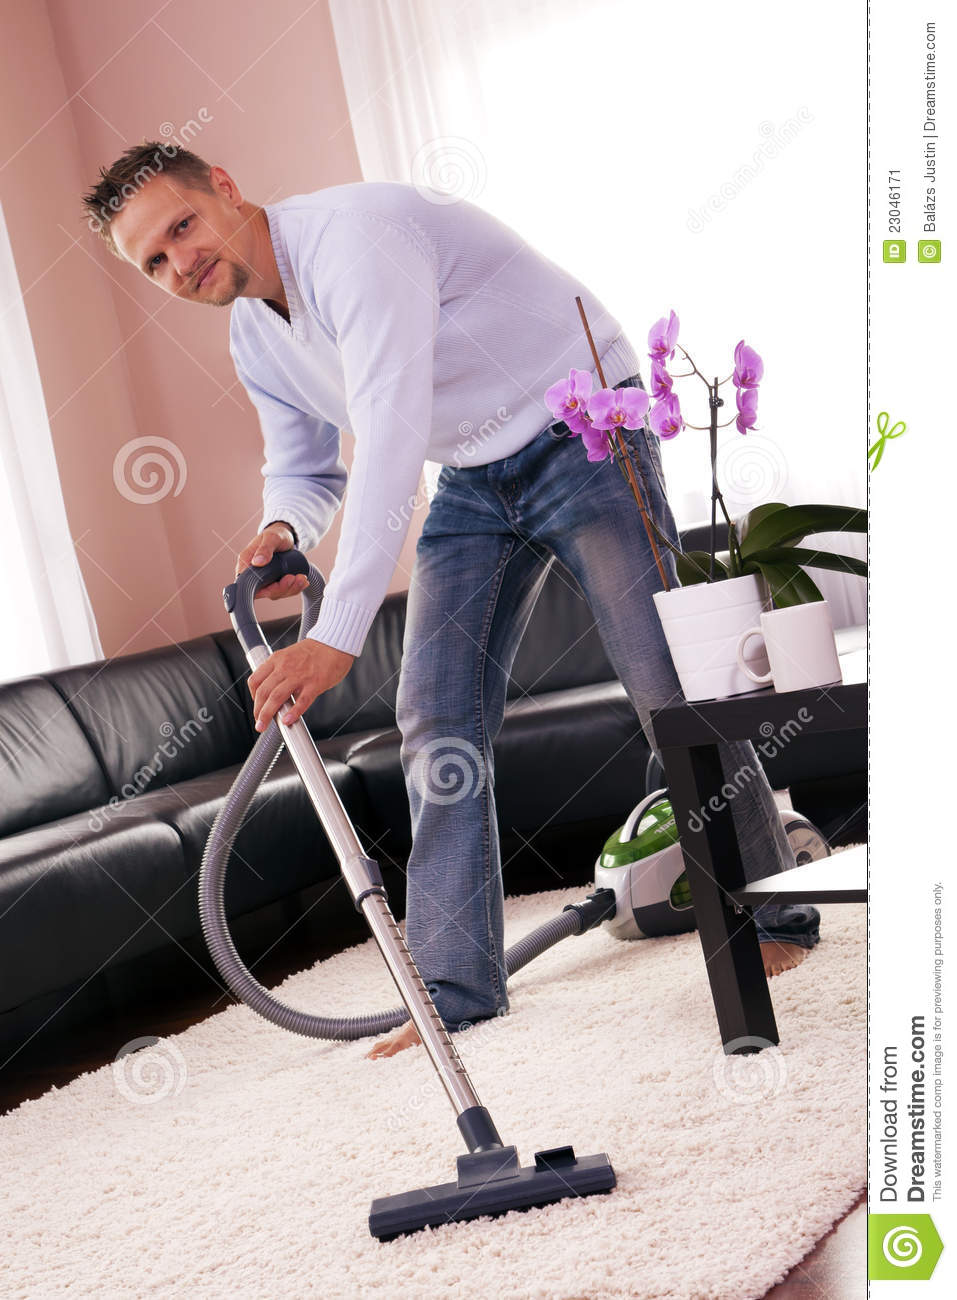 He Cleaned The Carpet  Vacuum Cleaner  Stock Image